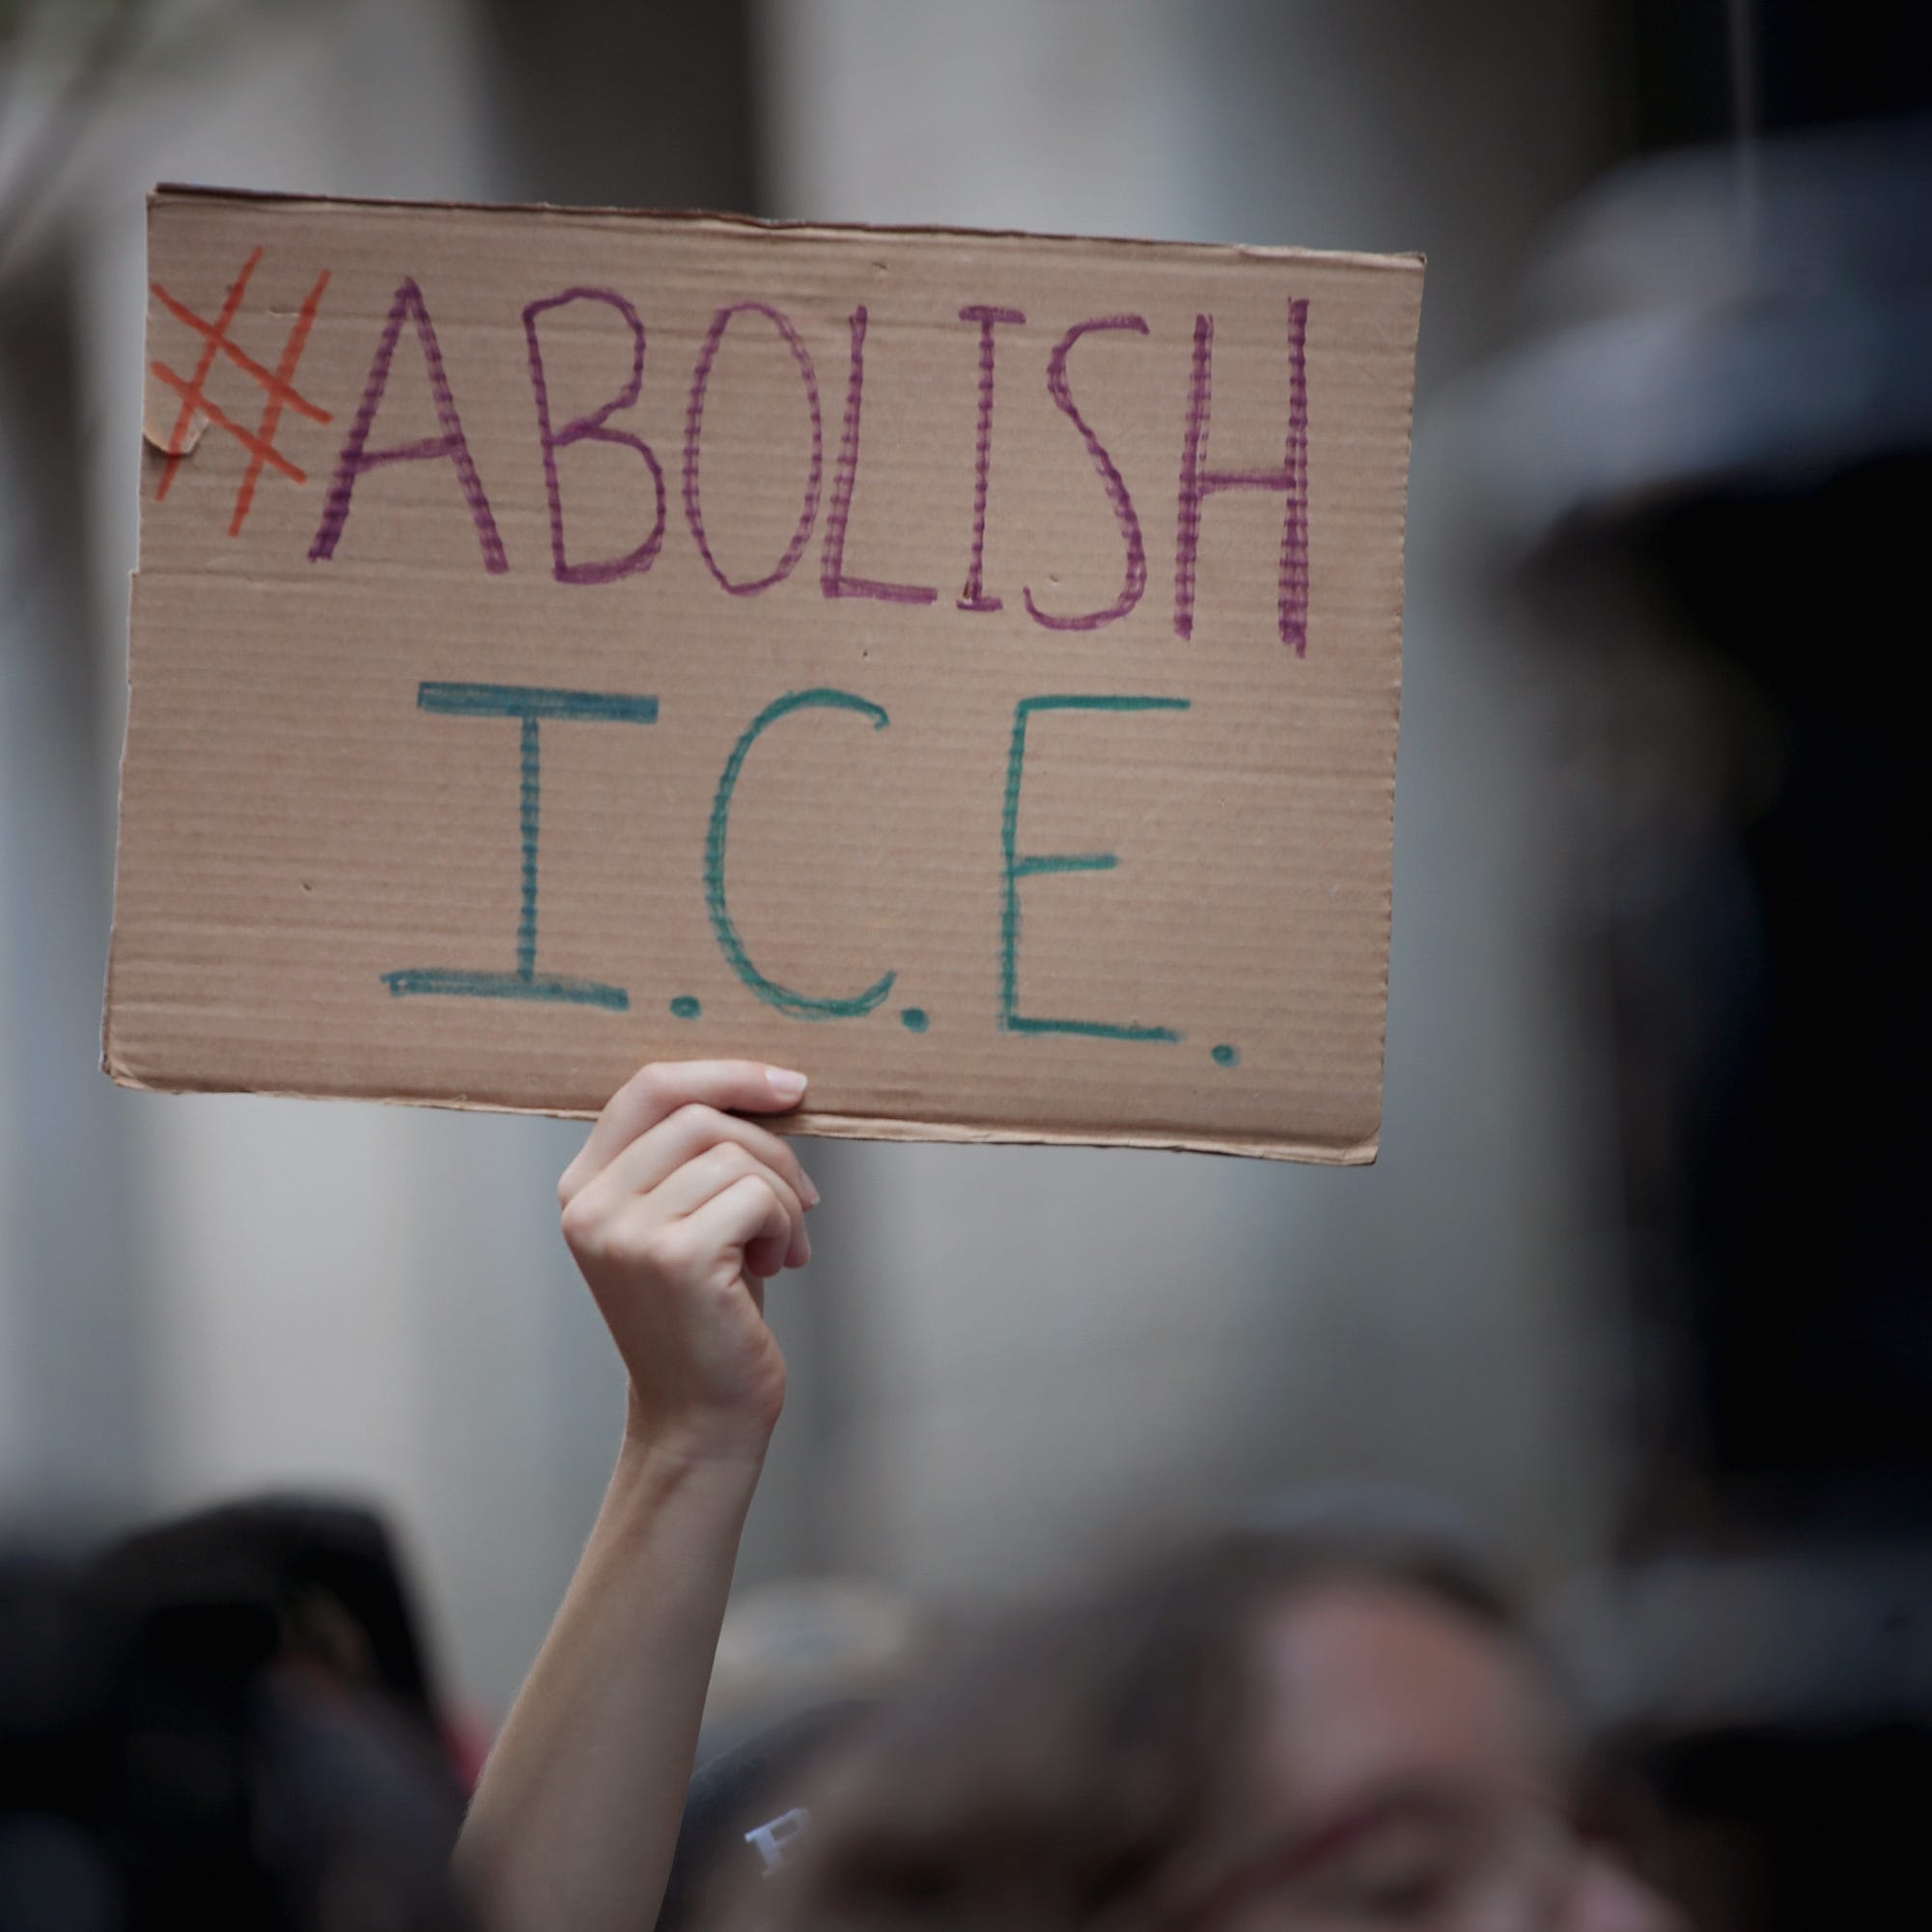 Remove all ICE prisoners from our jail: Atlanta mayor